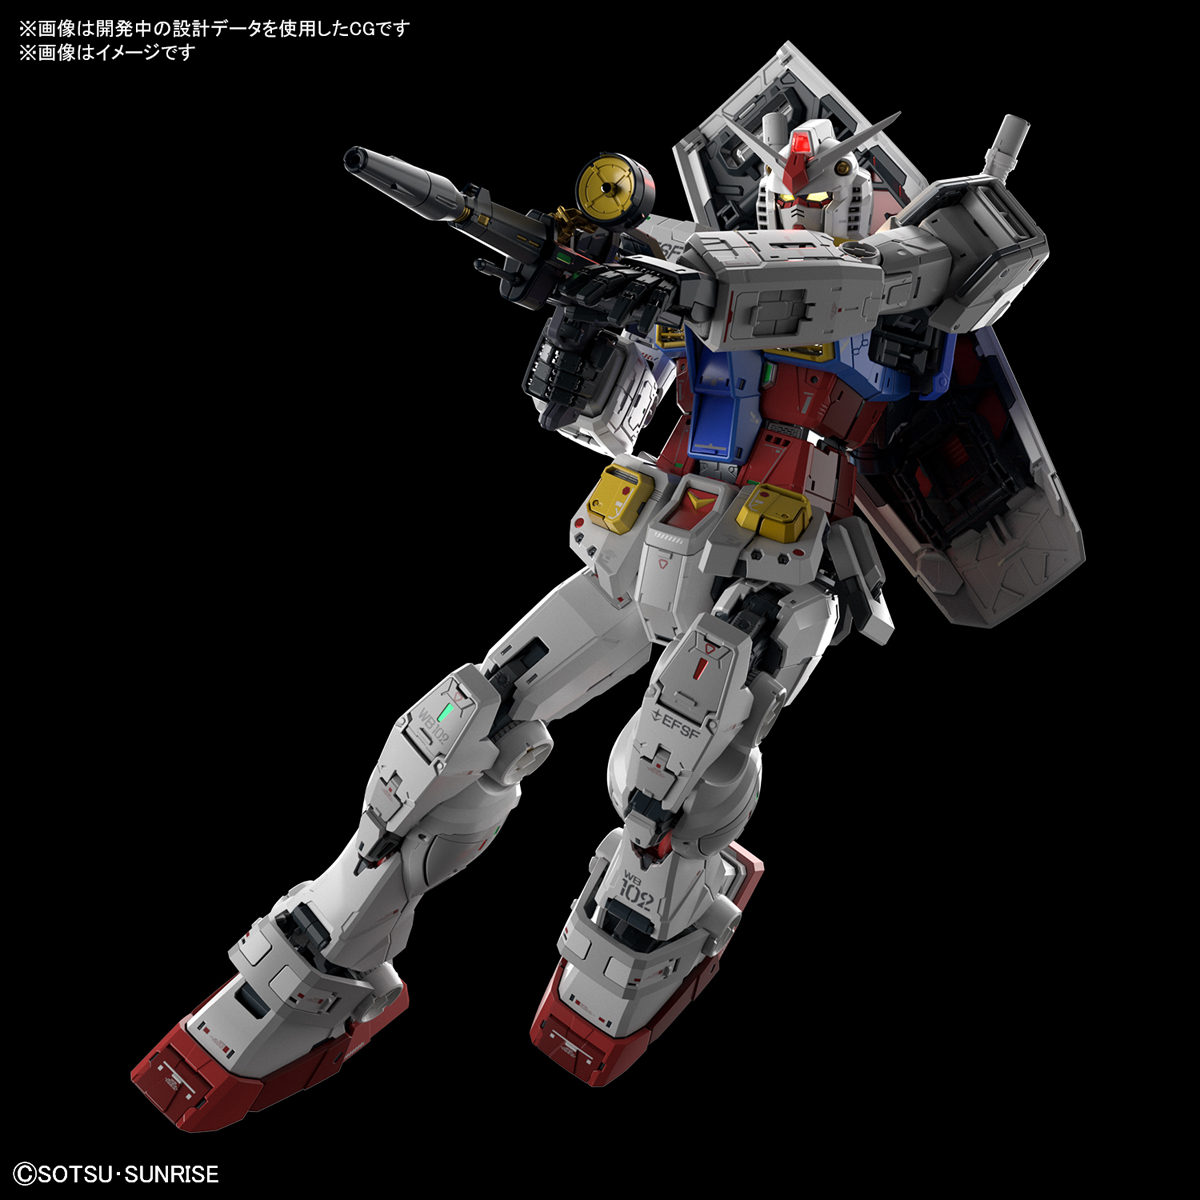 PERFECT GRADE UNLEASHED 1/60 RX-78-2 ガンダムのイメージ06